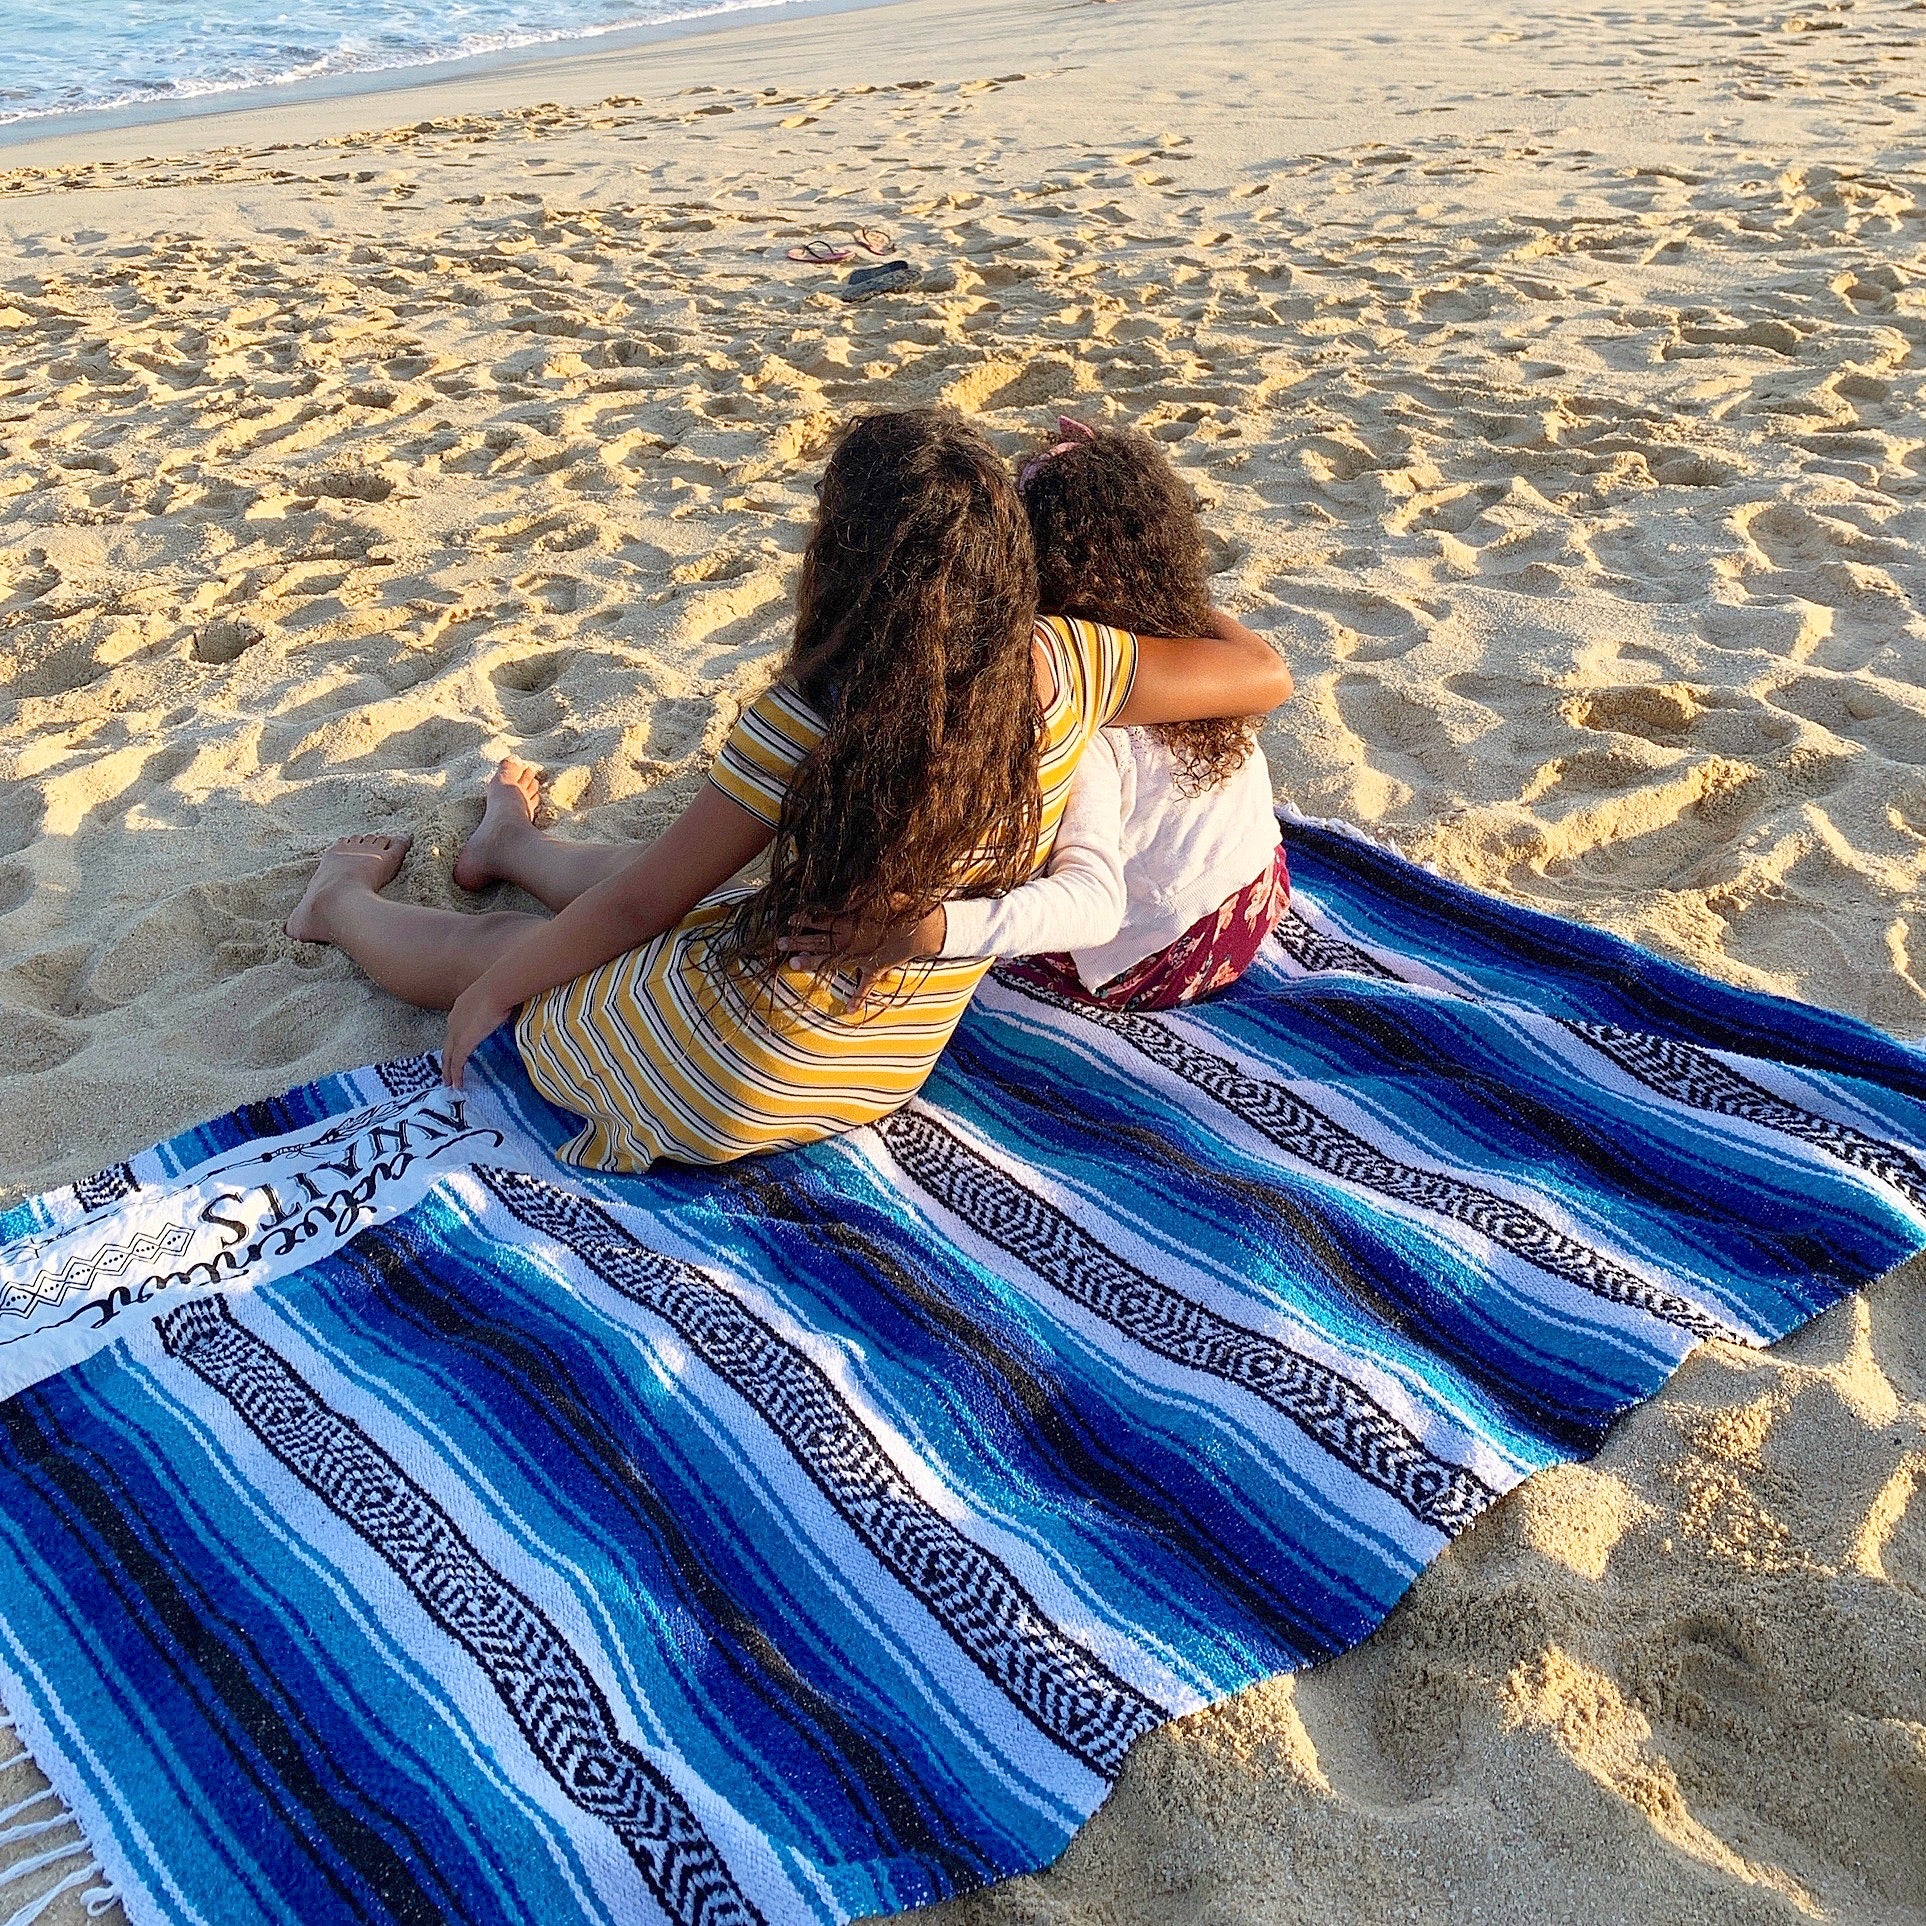 Life Style Picture of Family Mexican Blanket Being Used on the Beach